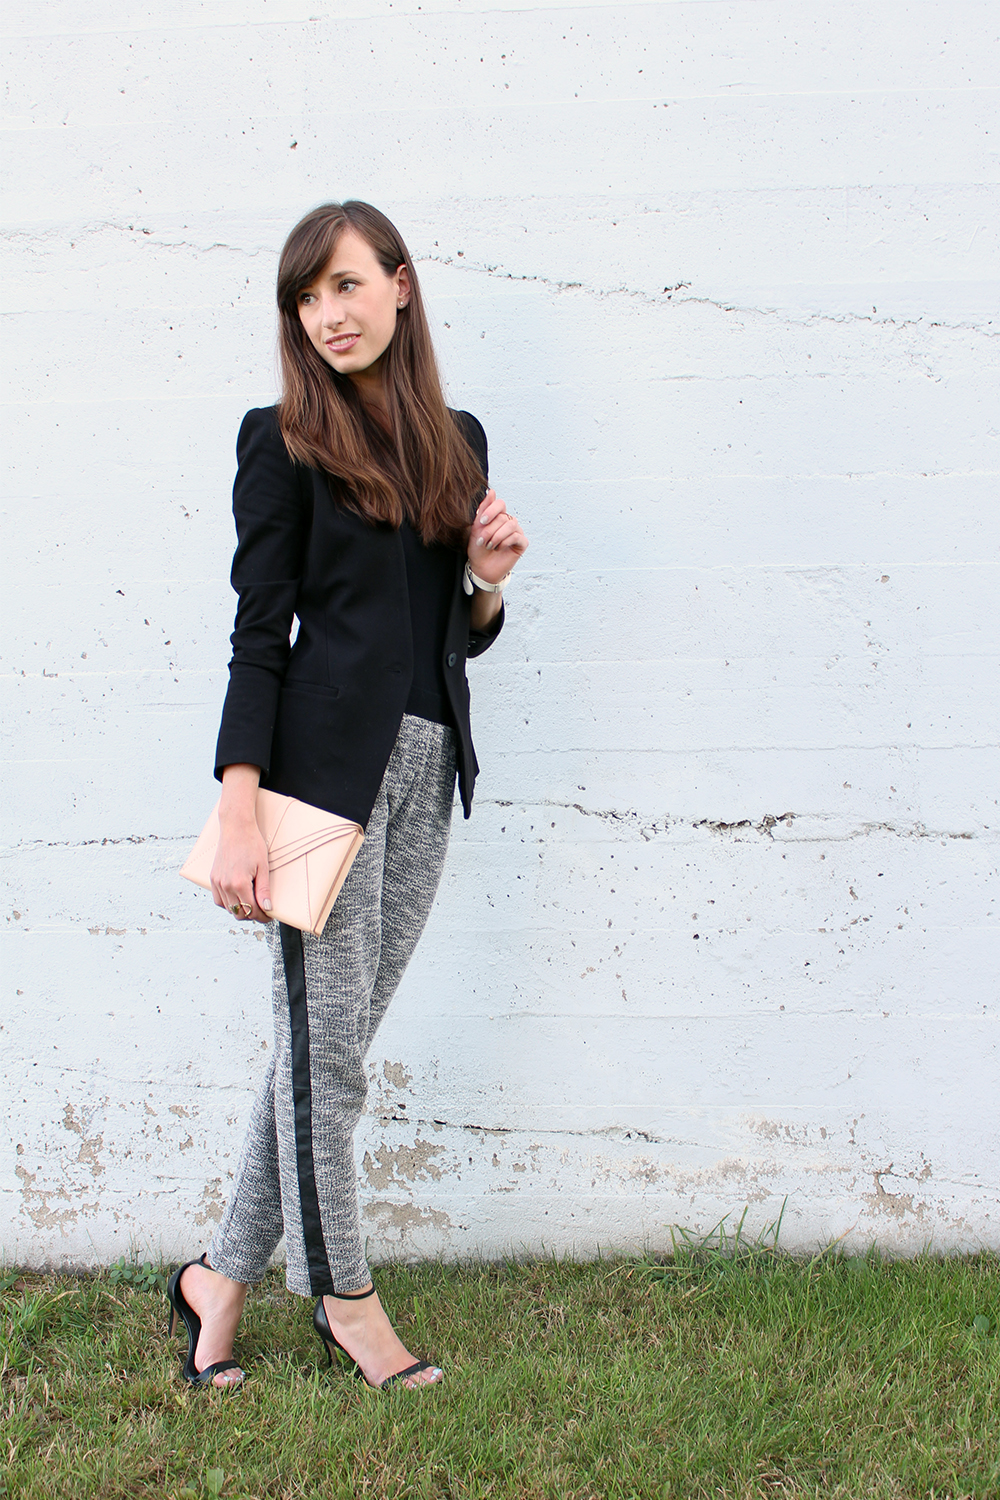 Style Bee wearing a black blazer and tuxedo pants.